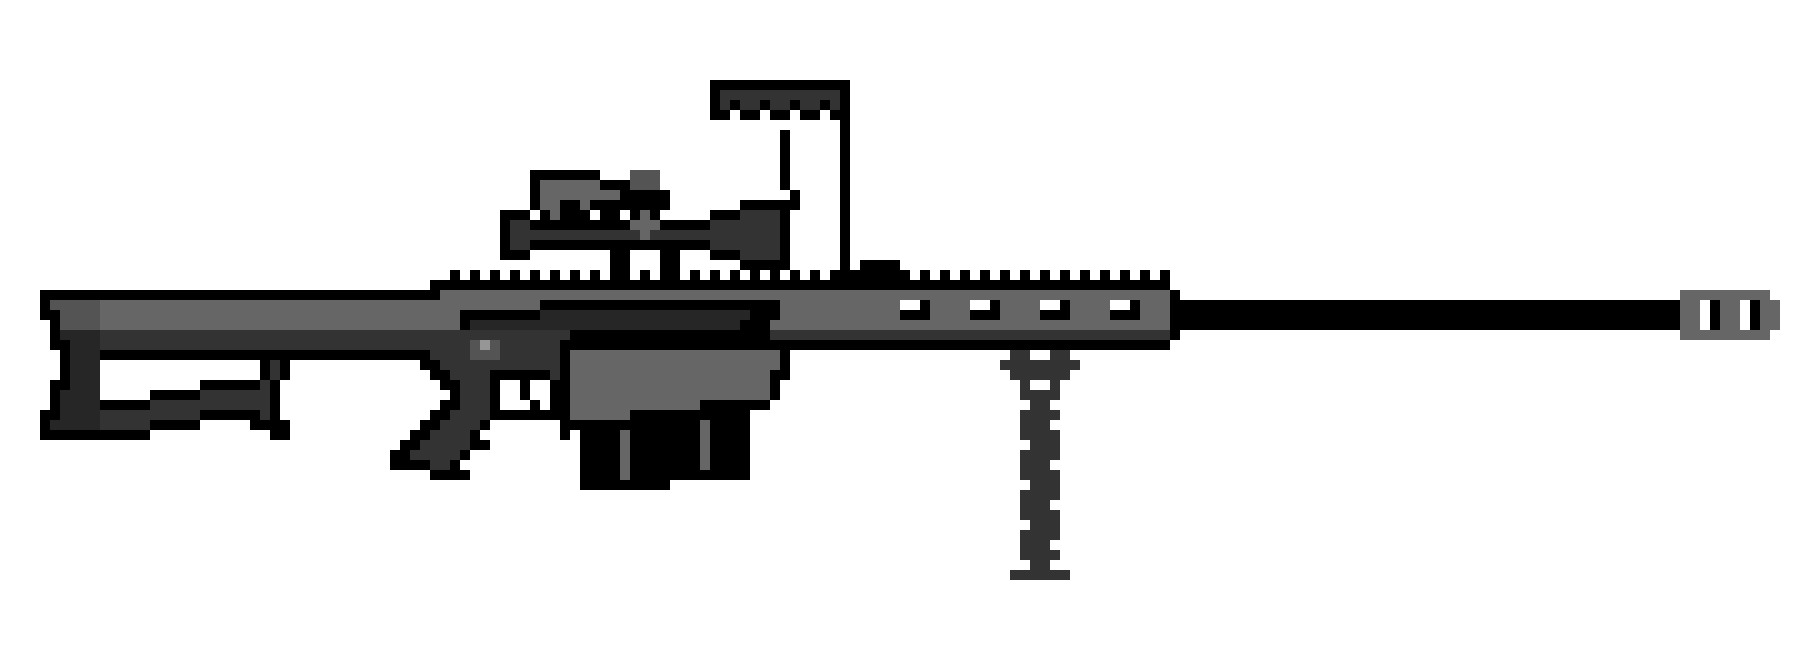 Barrett 50 Cal Wallpaper Hd Pictures Wiring Diagram Sniper Pixel Art Diagrams